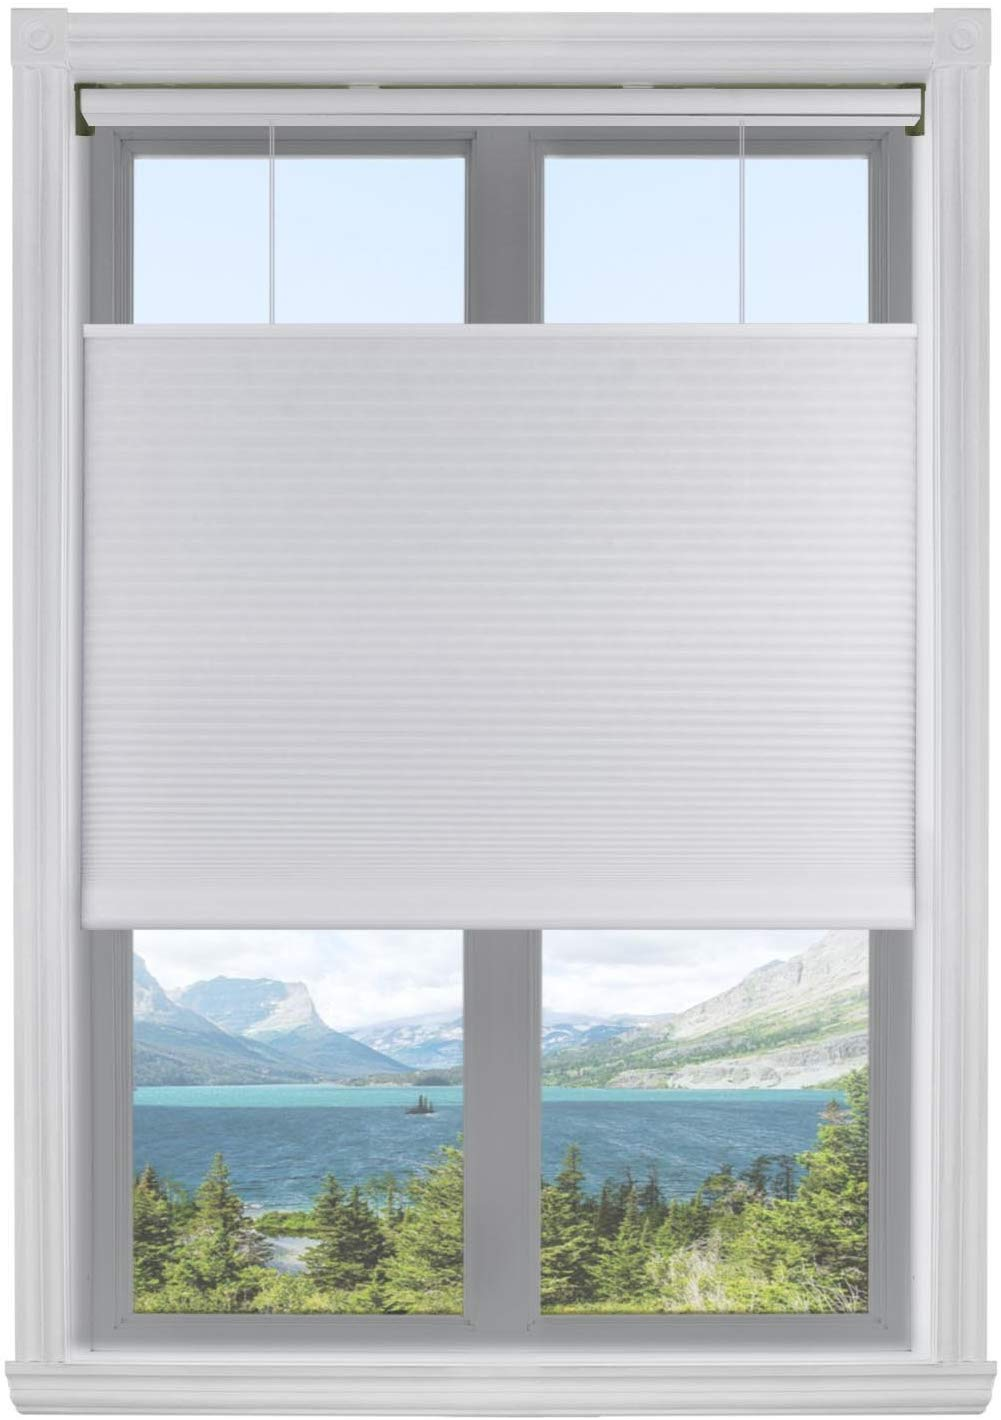 Calyx Interiors A04HTC220600 Cellular Shade